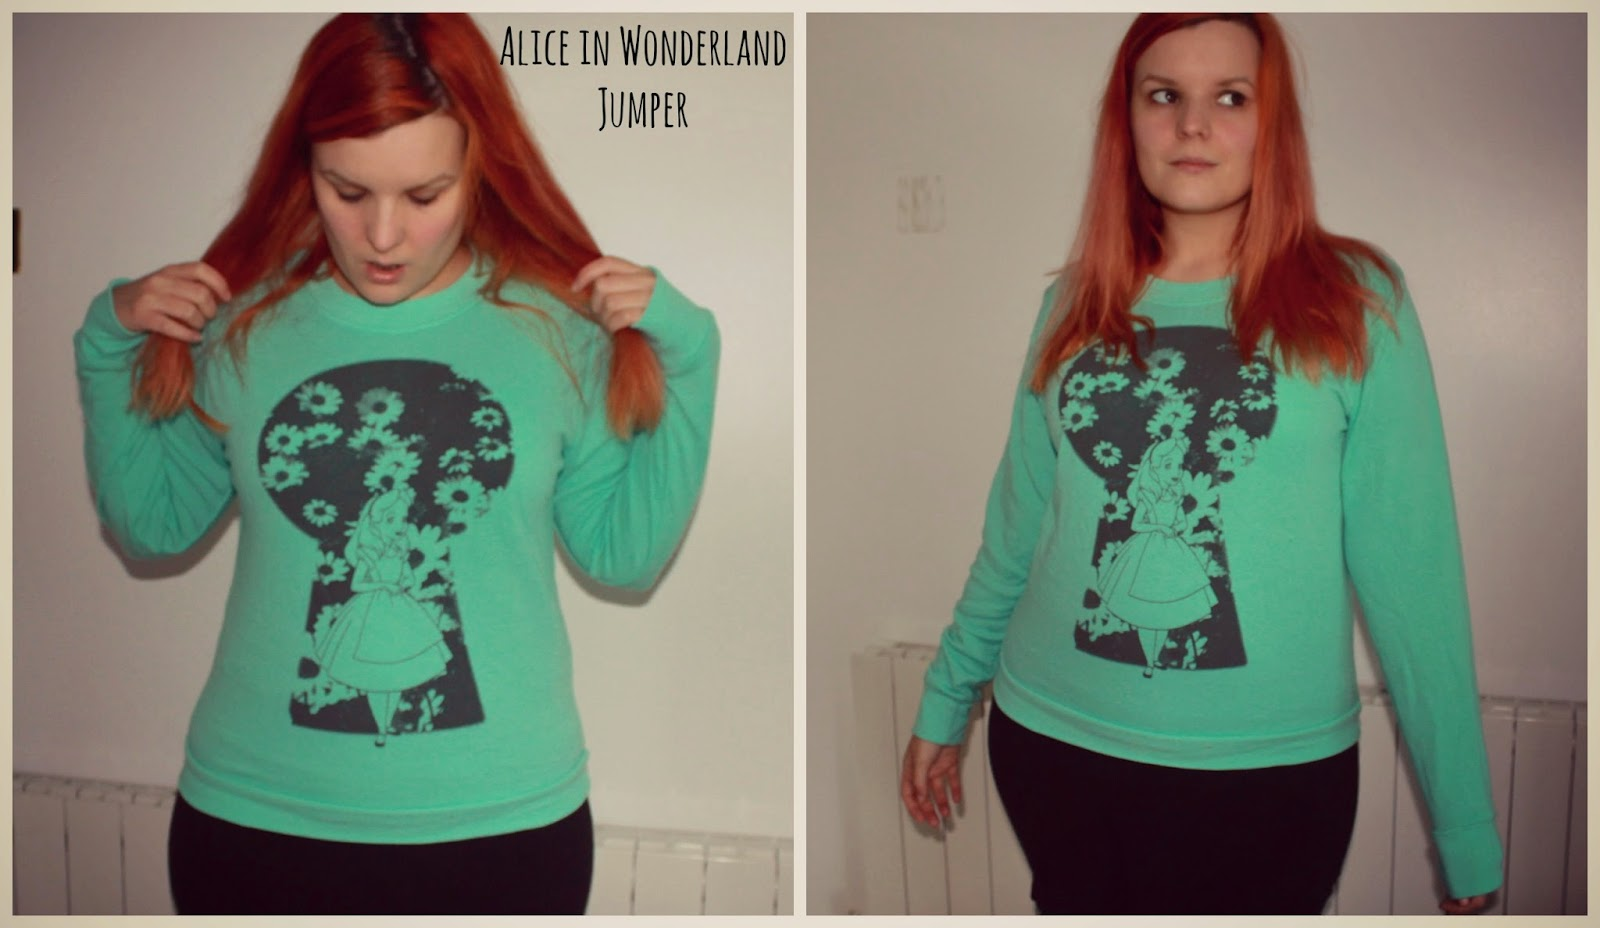 Alice in Wonderland Jumper from Hot Topic